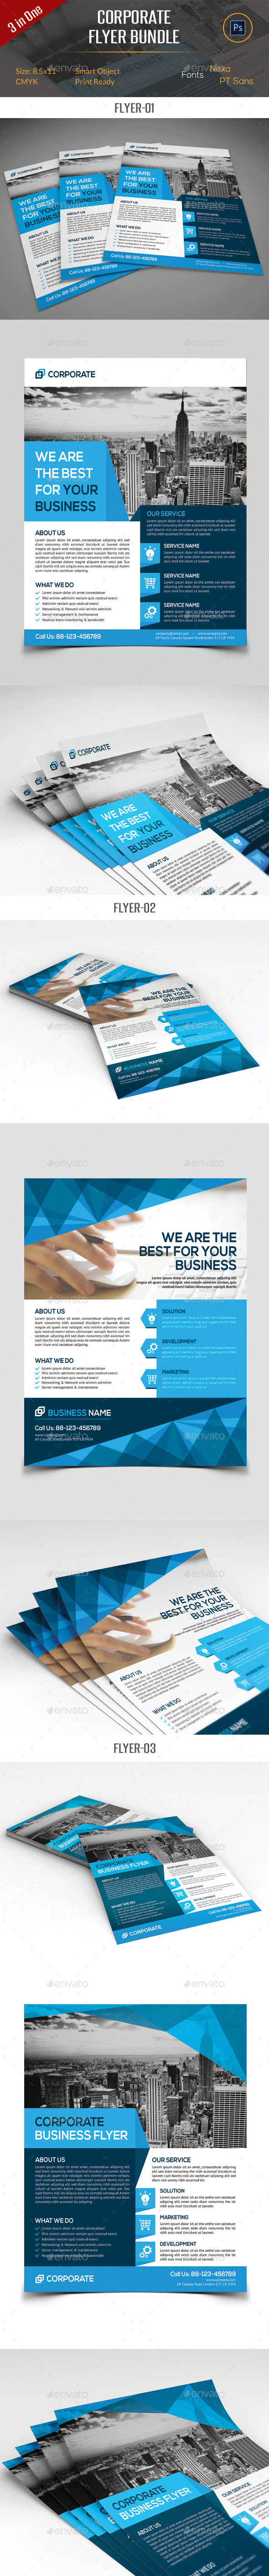 GraphicRiver Corporate Business Flyer Bundle 11588435